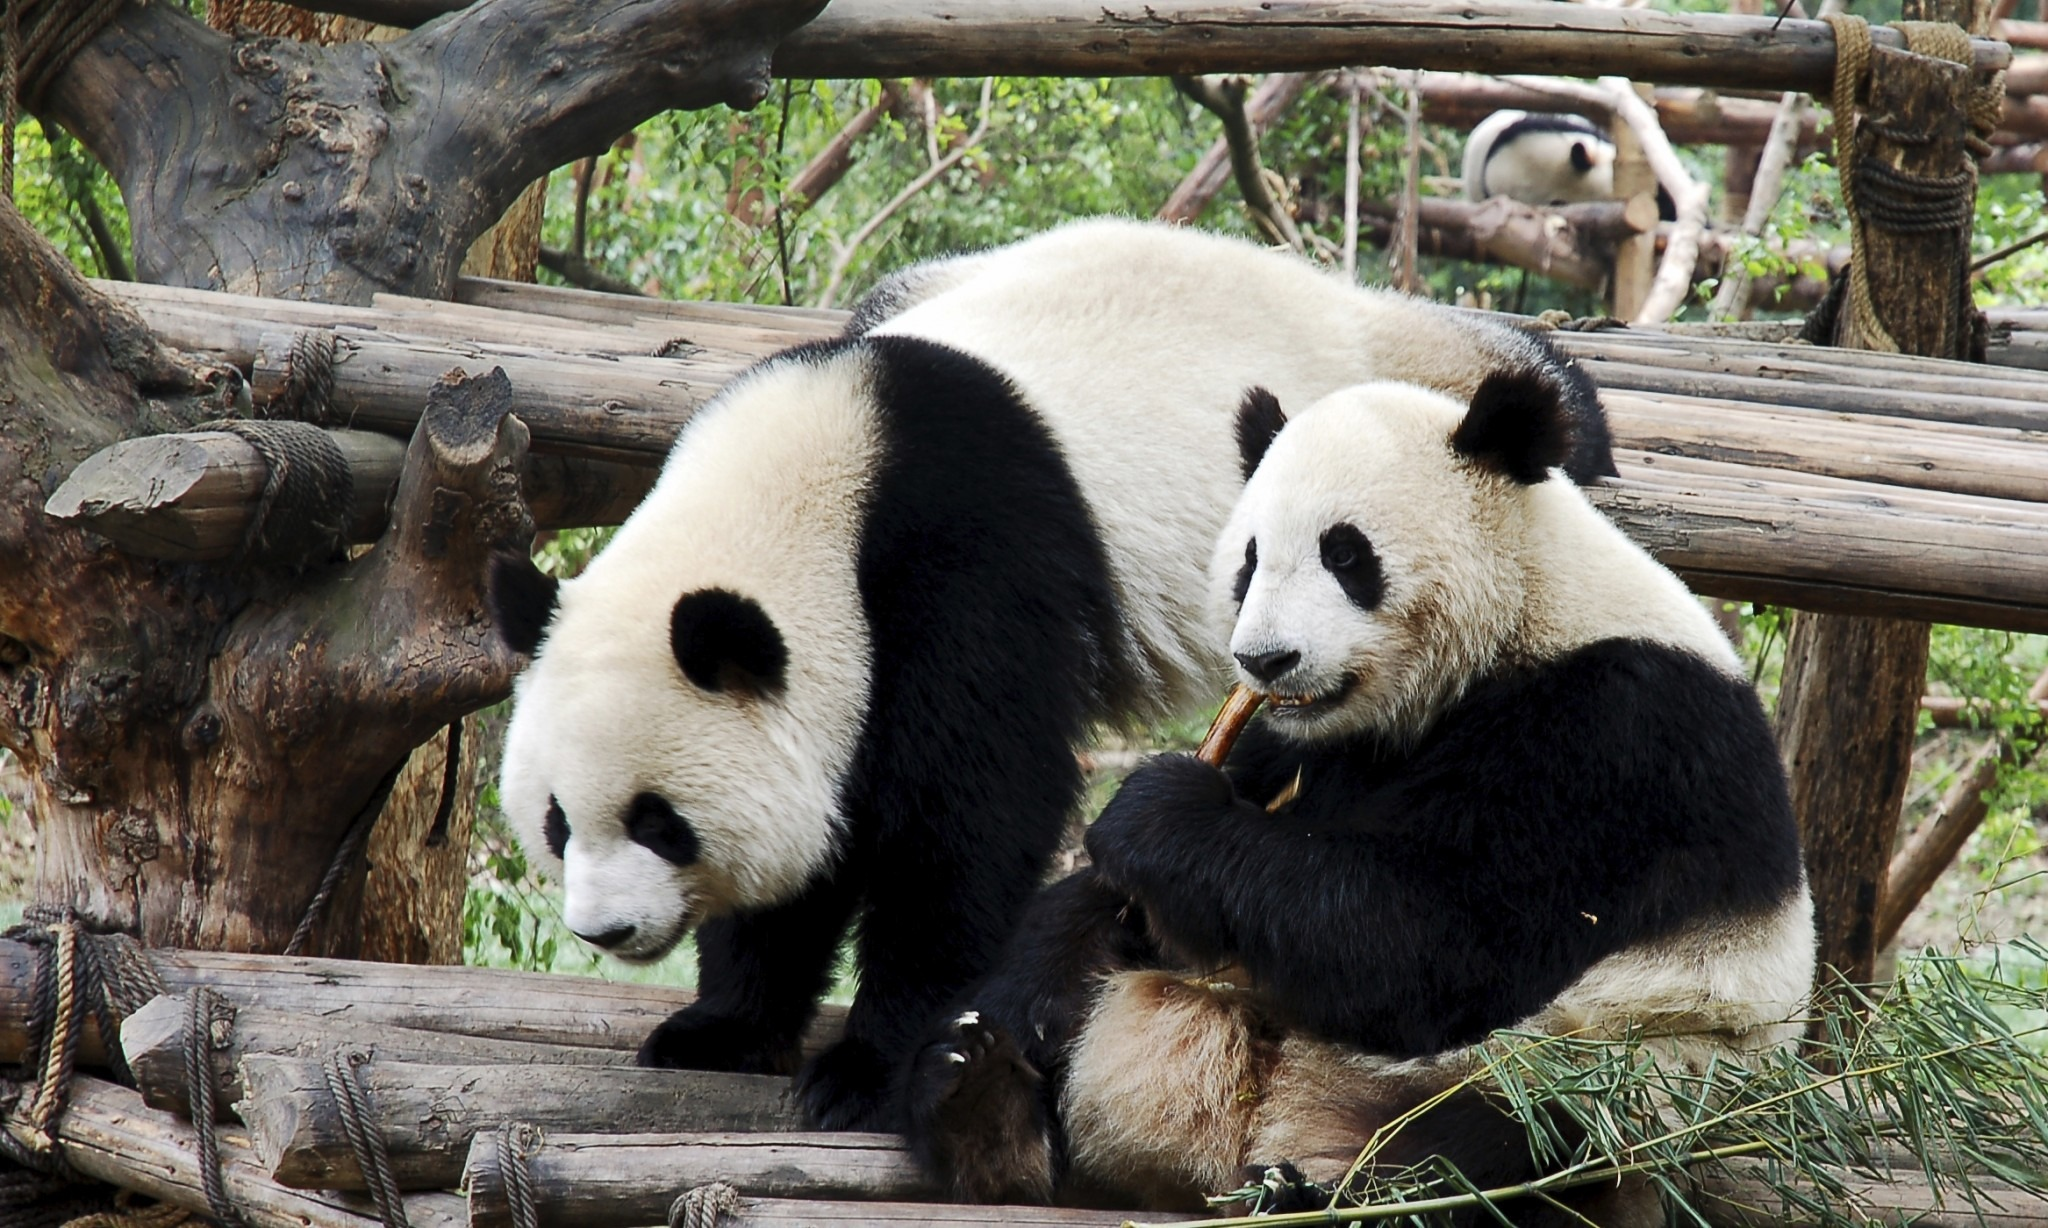 Is the Price of Protecting Pandas Too High?